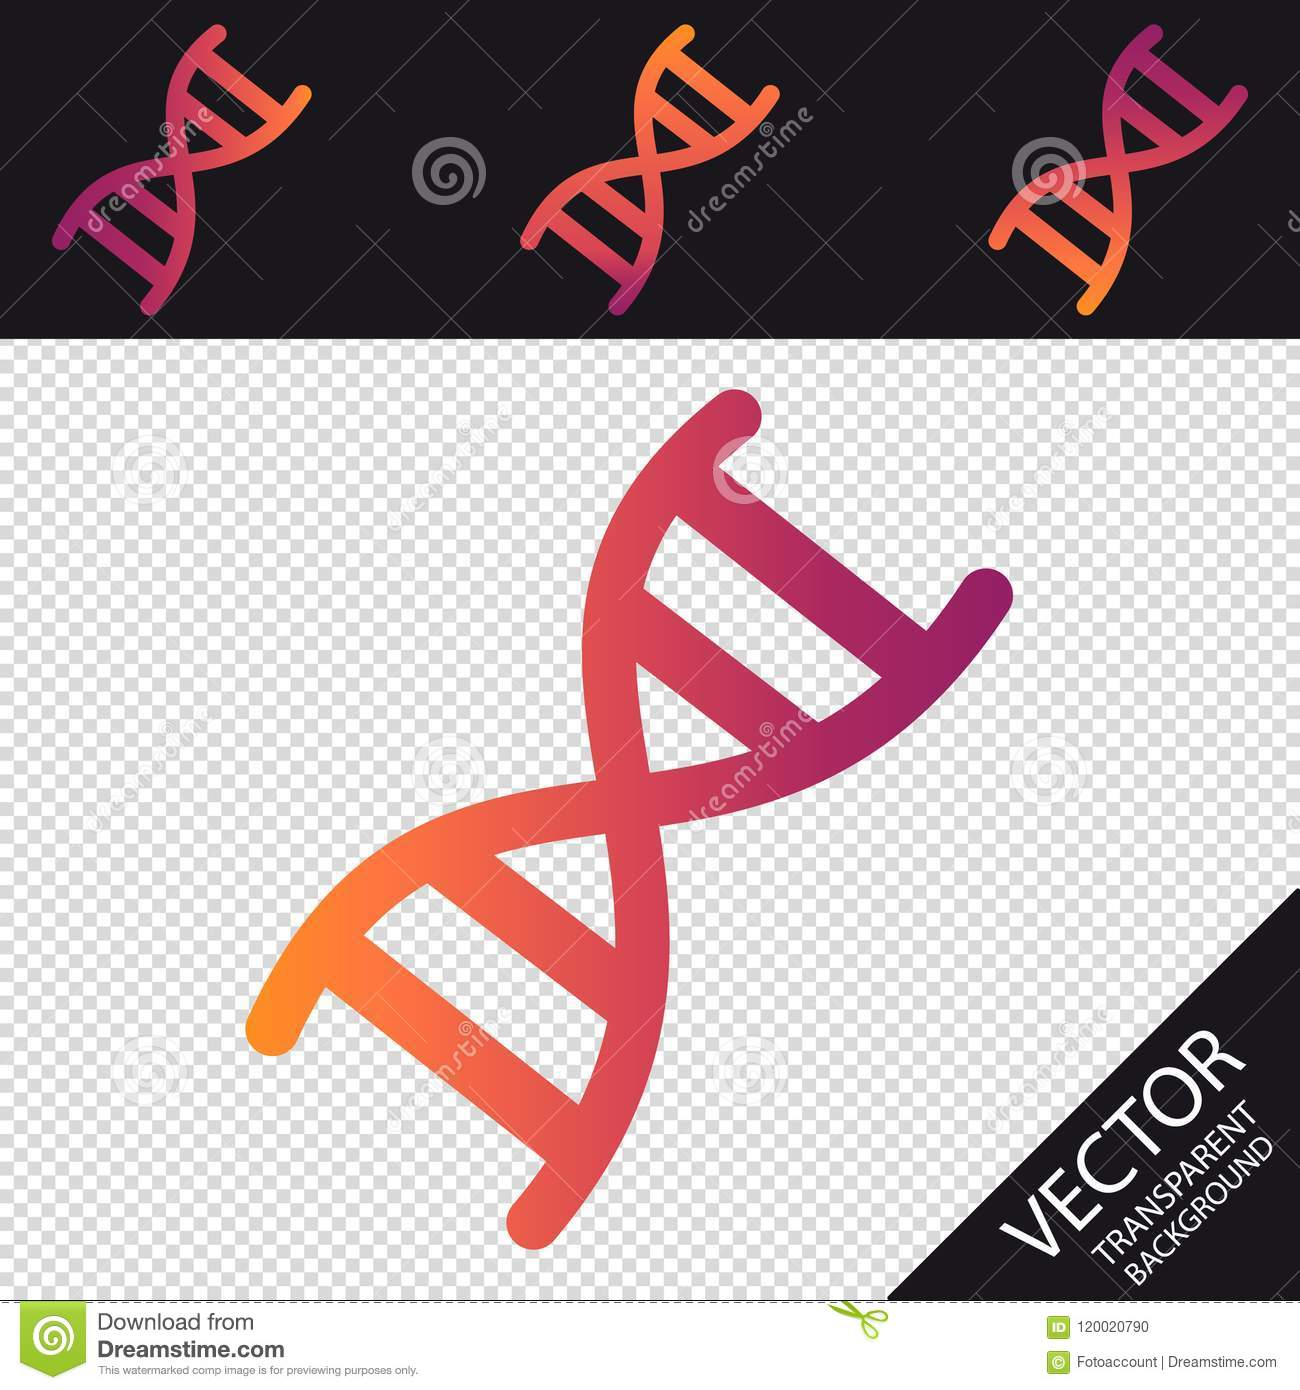 dna chromosome icon - retro hipster vector illustration - isolated